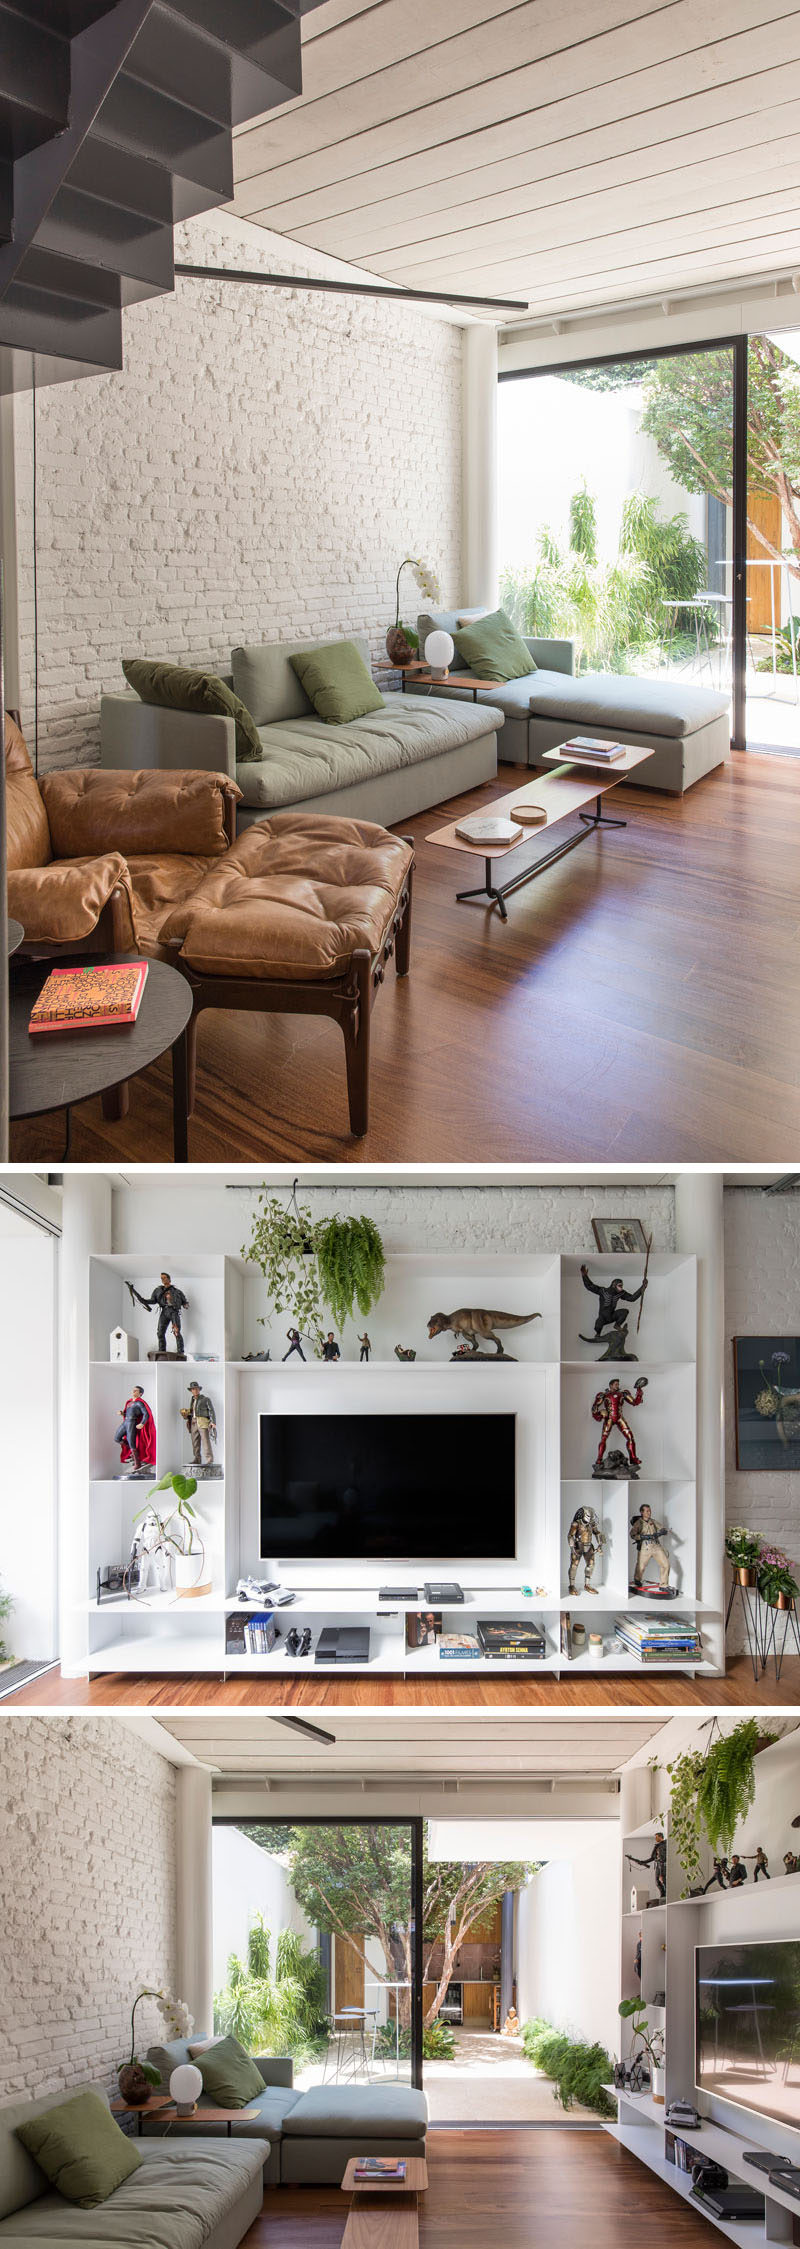 In this modern living room, seating is located along one side of the space, while on the other wall, there's a shelving unit with room to display action figures and house the television. #LivingRoom #Shelving